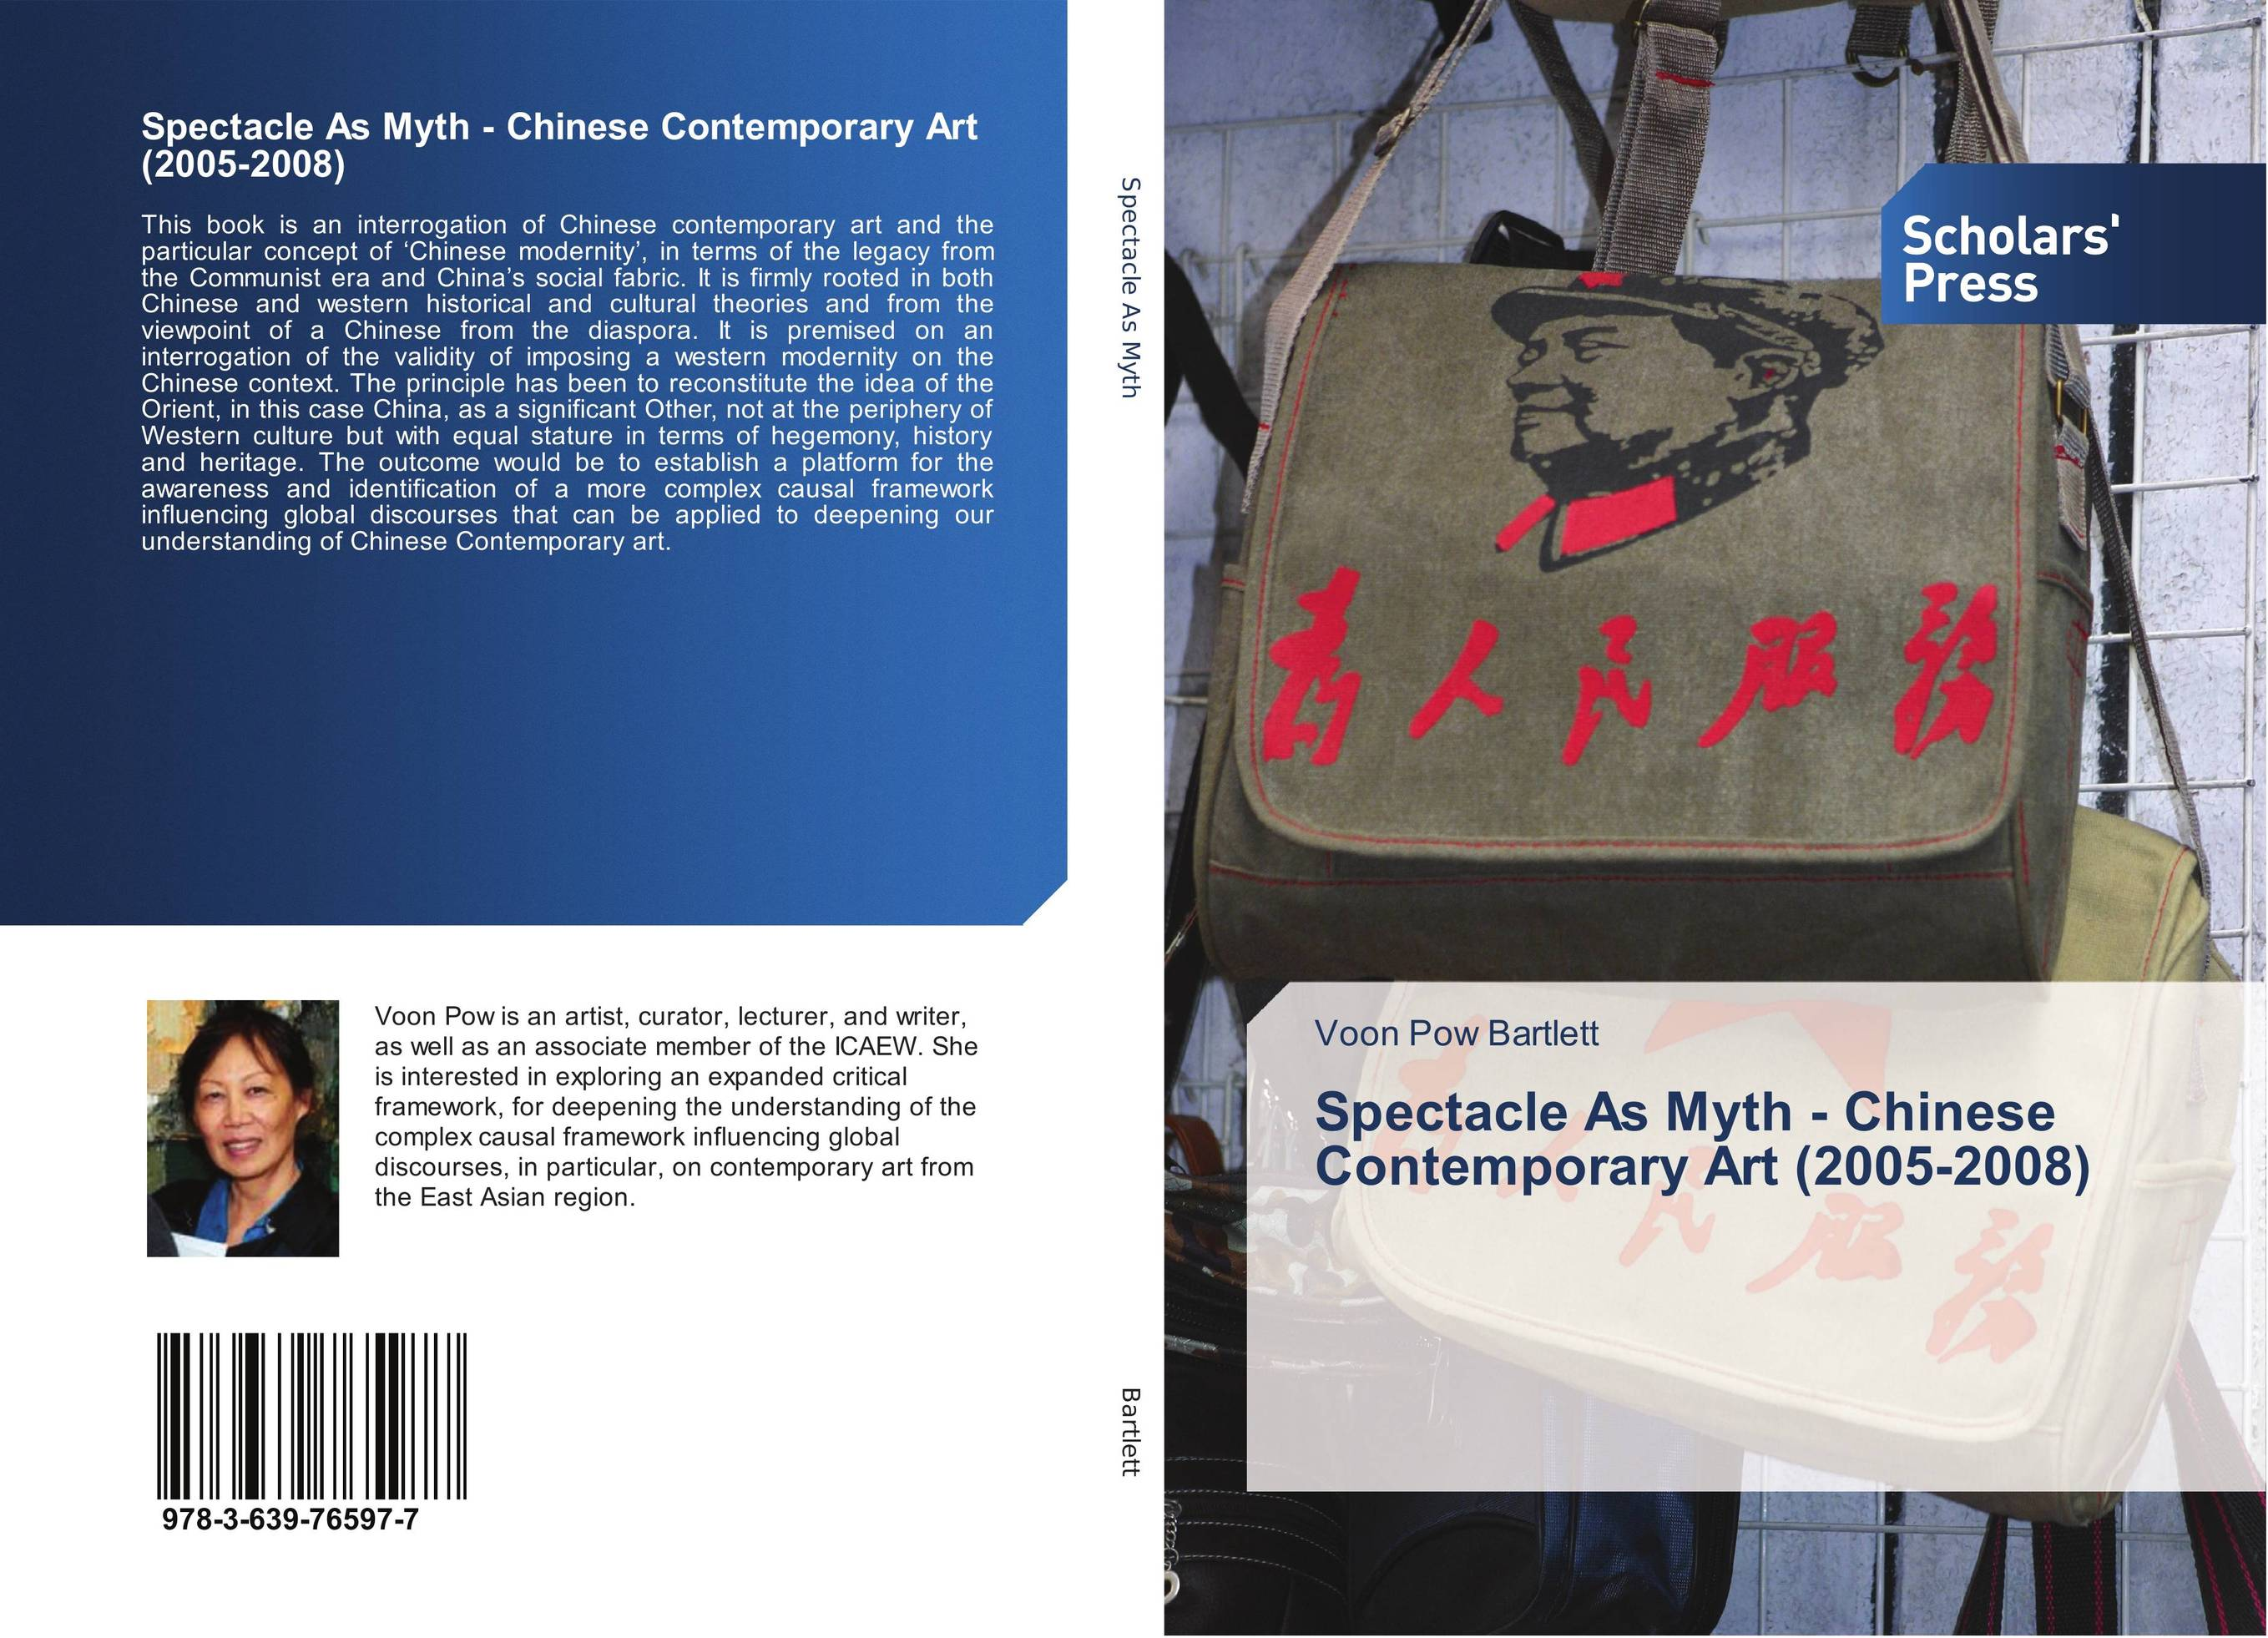 Spectacle As Myth - Chinese Contemporary Art (2005-2008) on a chinese screen